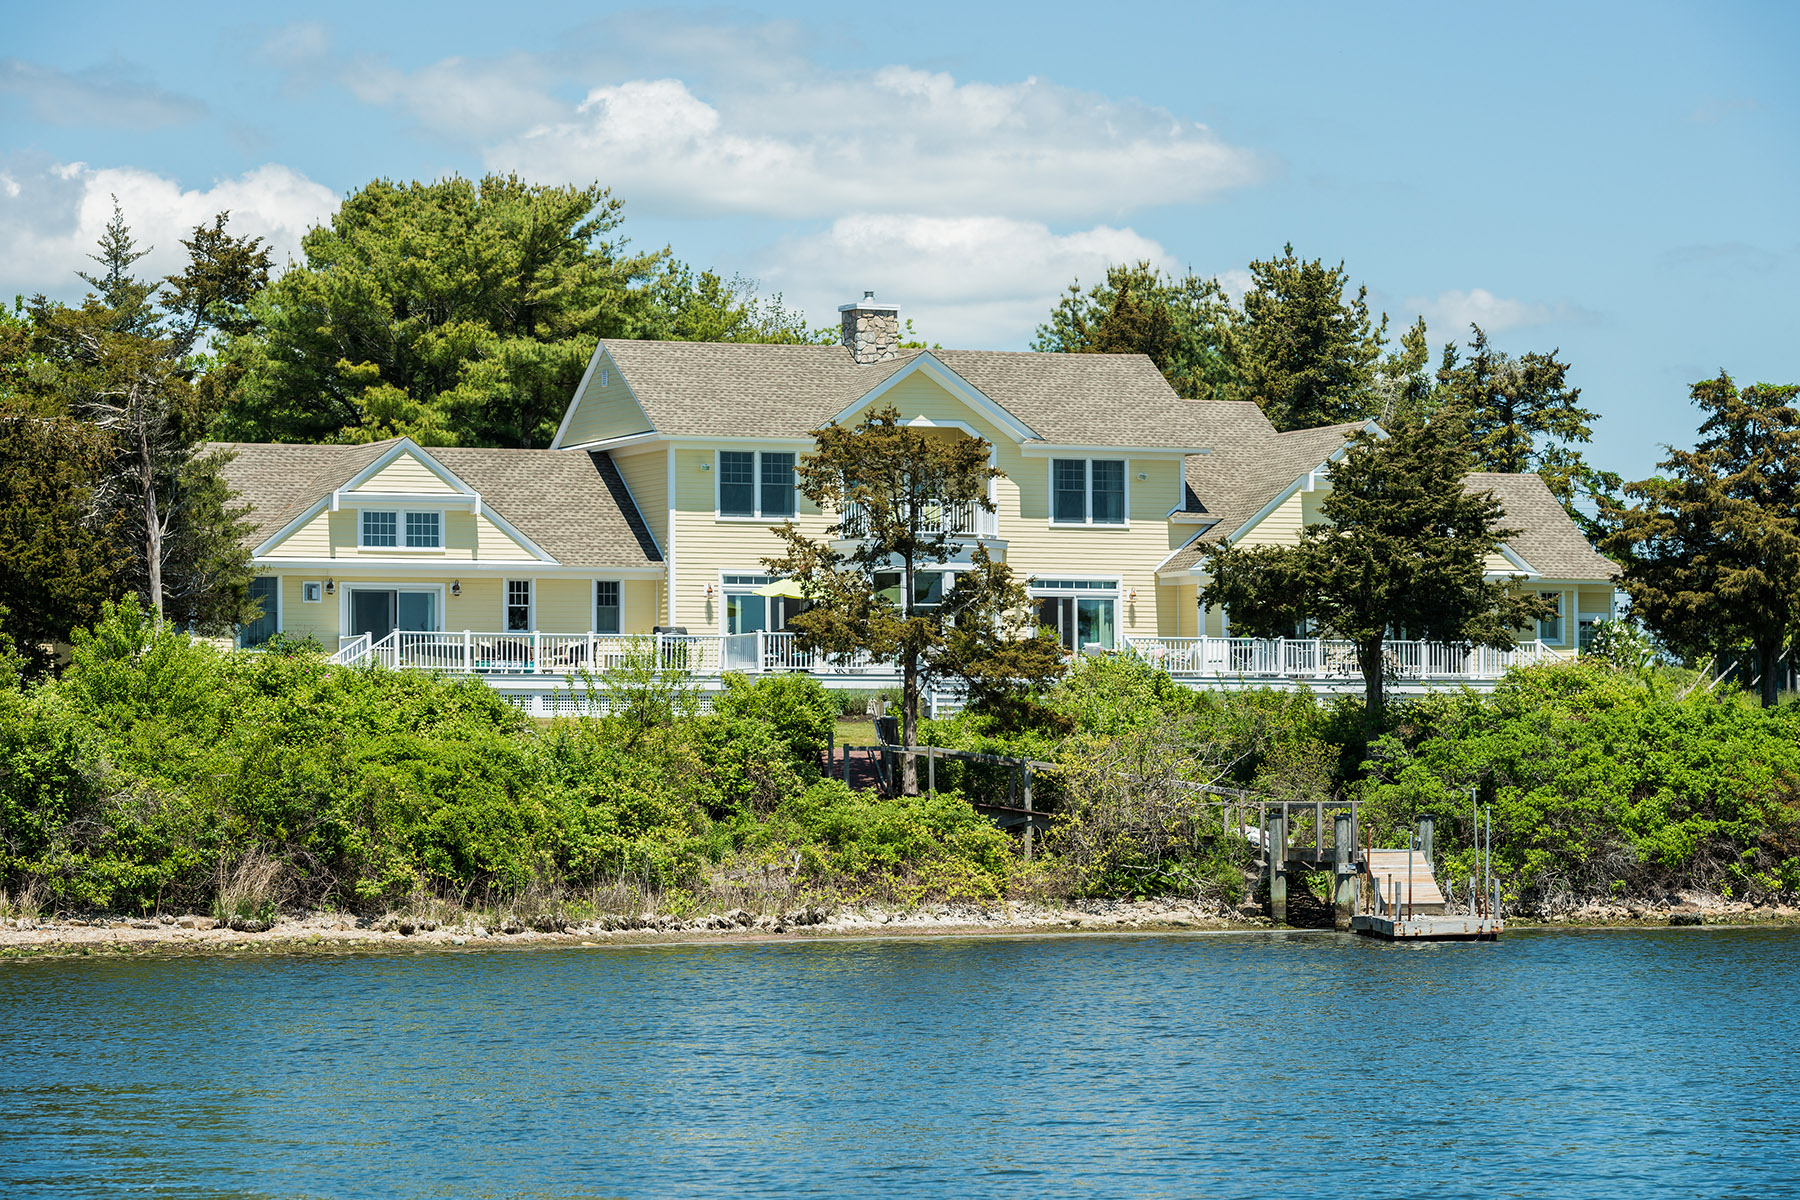 Single Family Home for Sale at 68 Gray's Point Rd, Charlestown, RI Charlestown, Rhode Island, 02813 United States